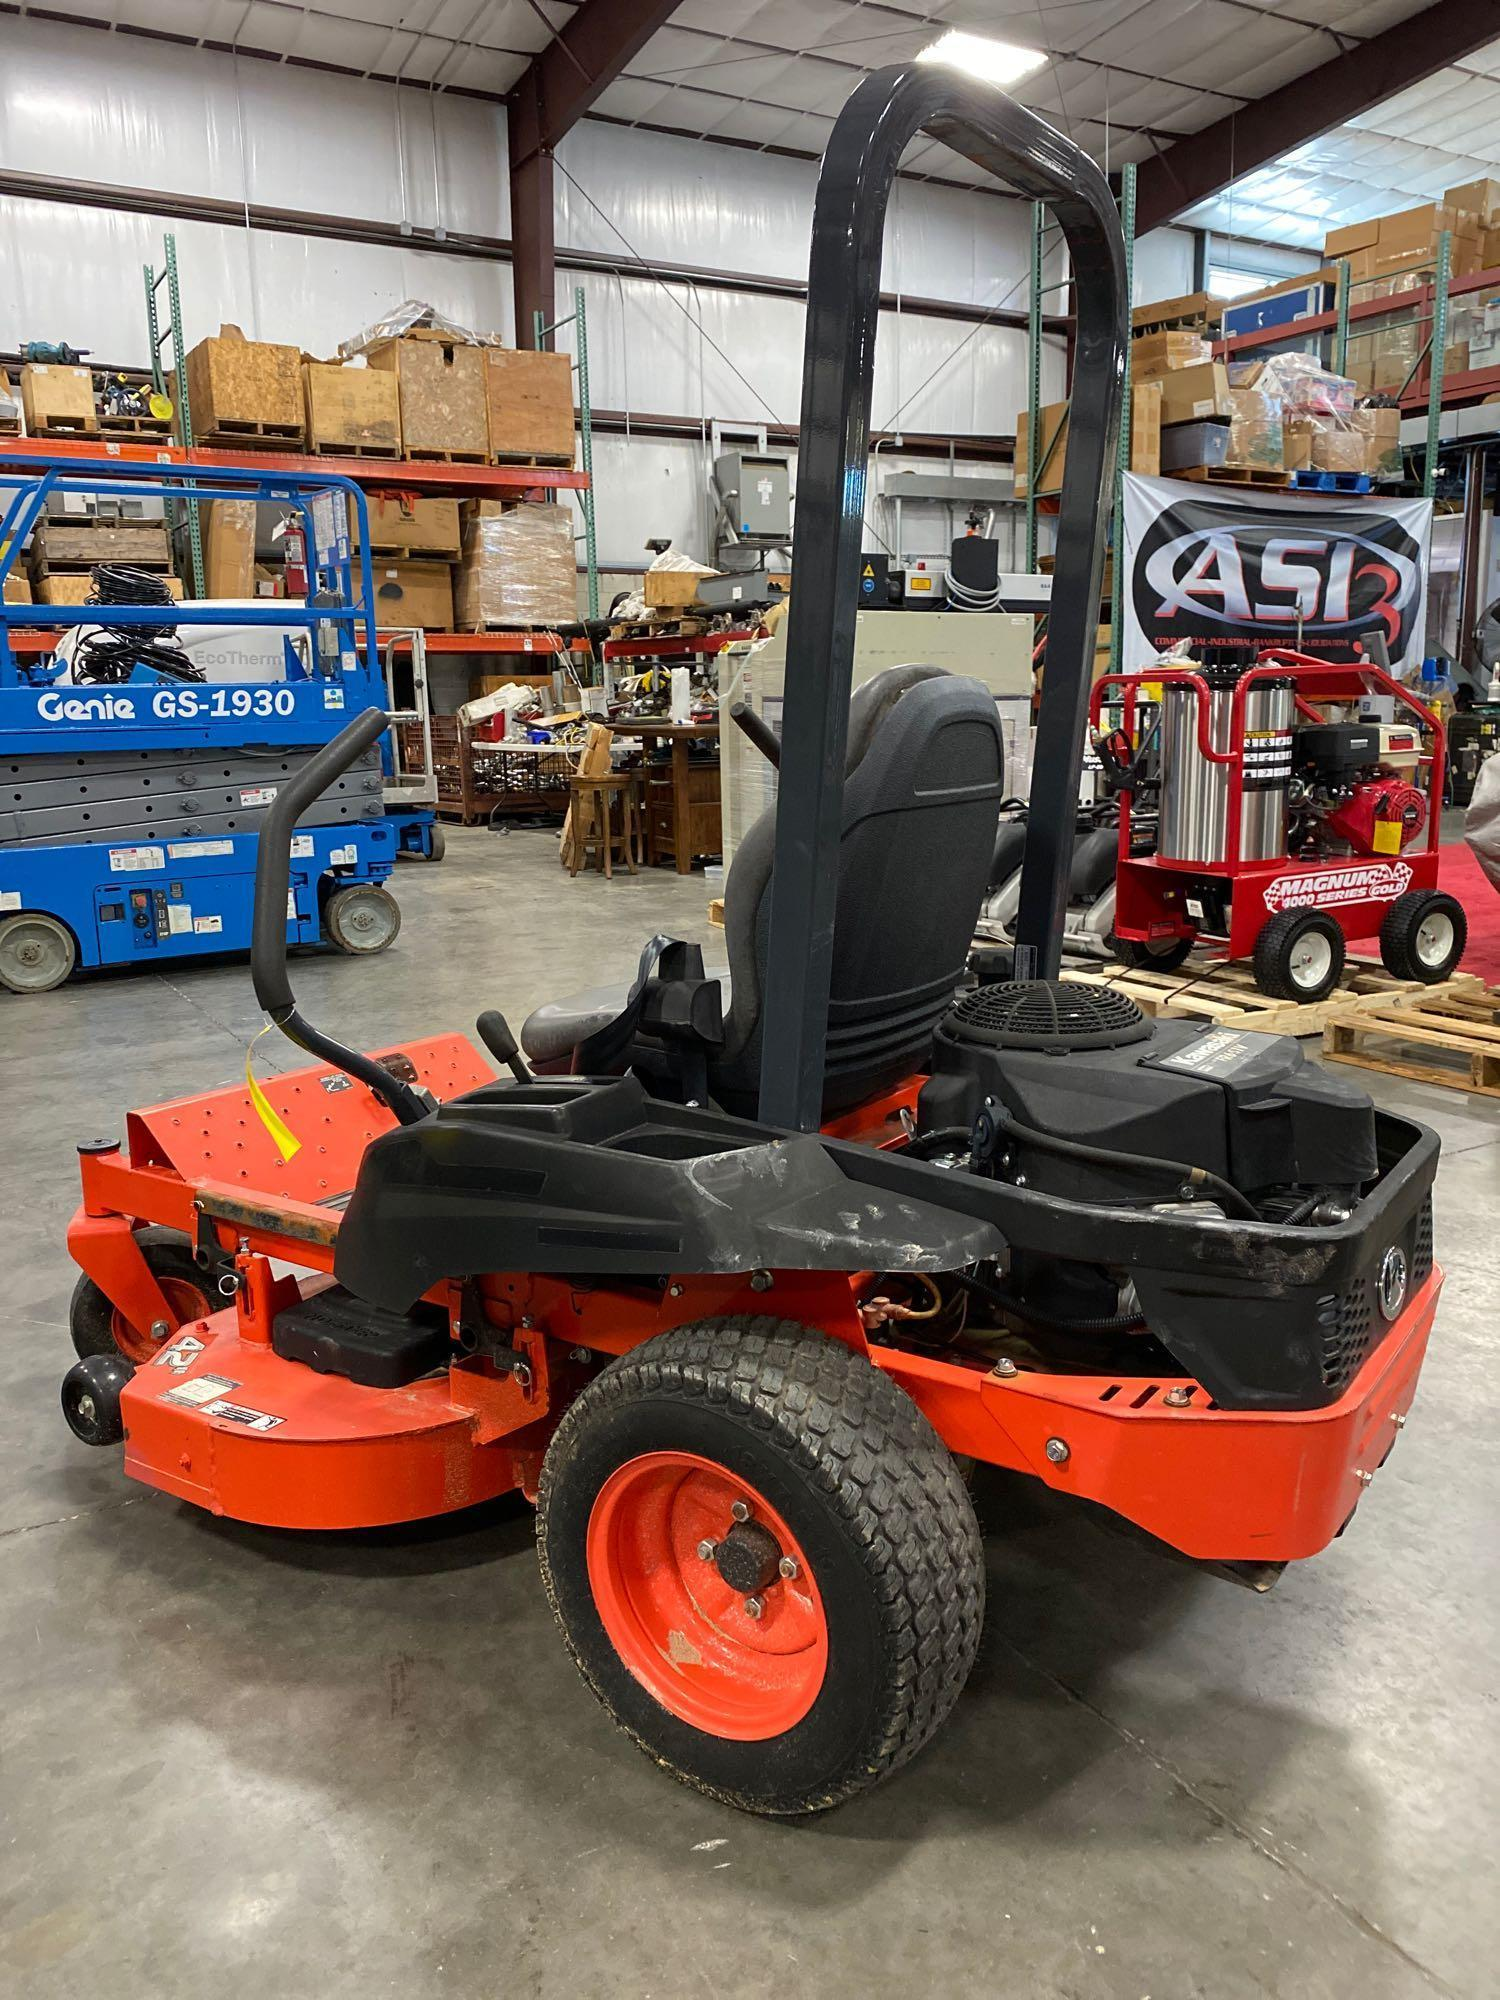 """2016 KUBOTA Z122RKW 42"""" RIDE ON MOWER, 3.9 HOURS SHOWING, RUNS AND OPERATES - Image 5 of 9"""